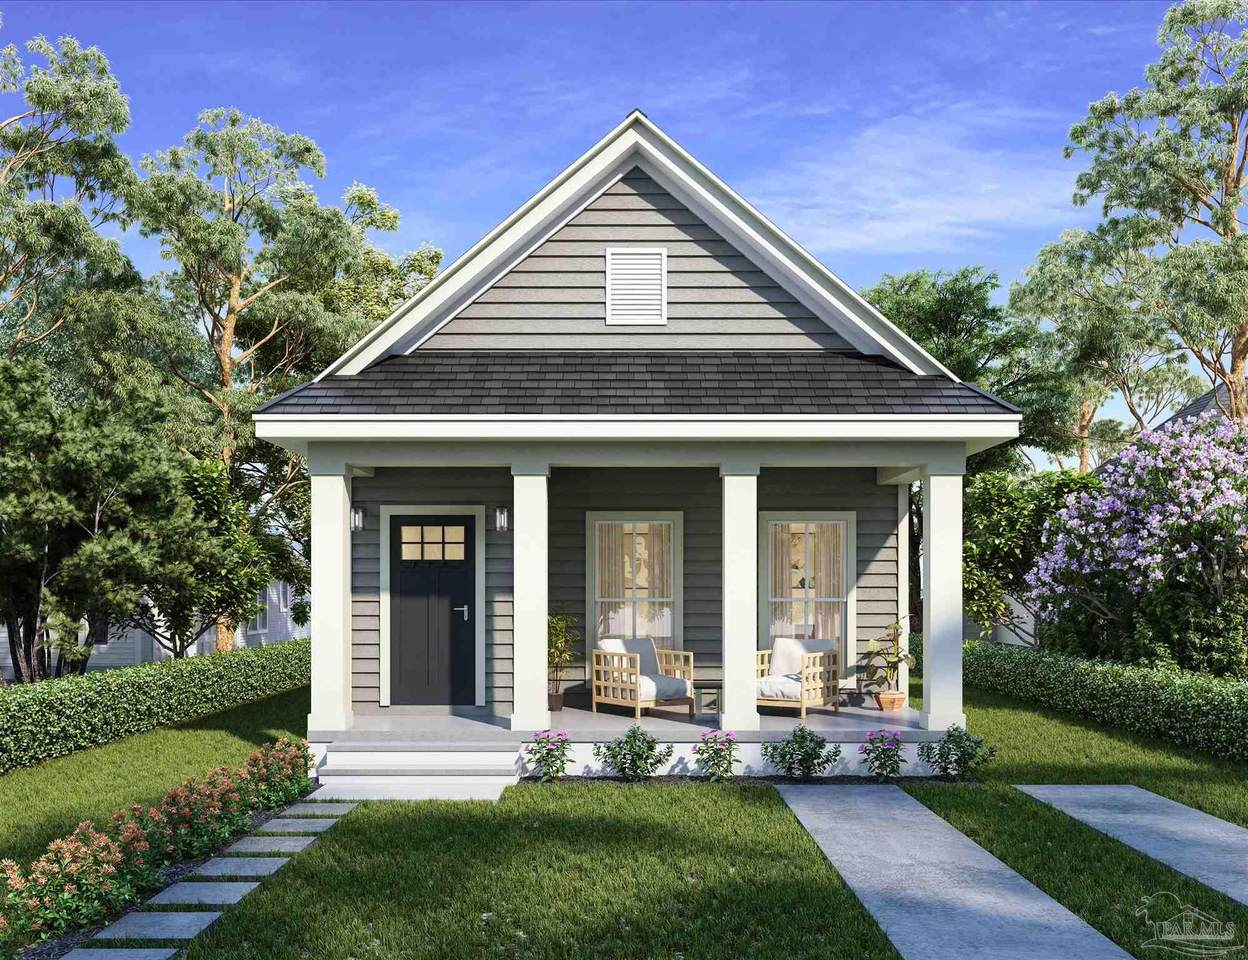 2102 Gregory St - Photo 1